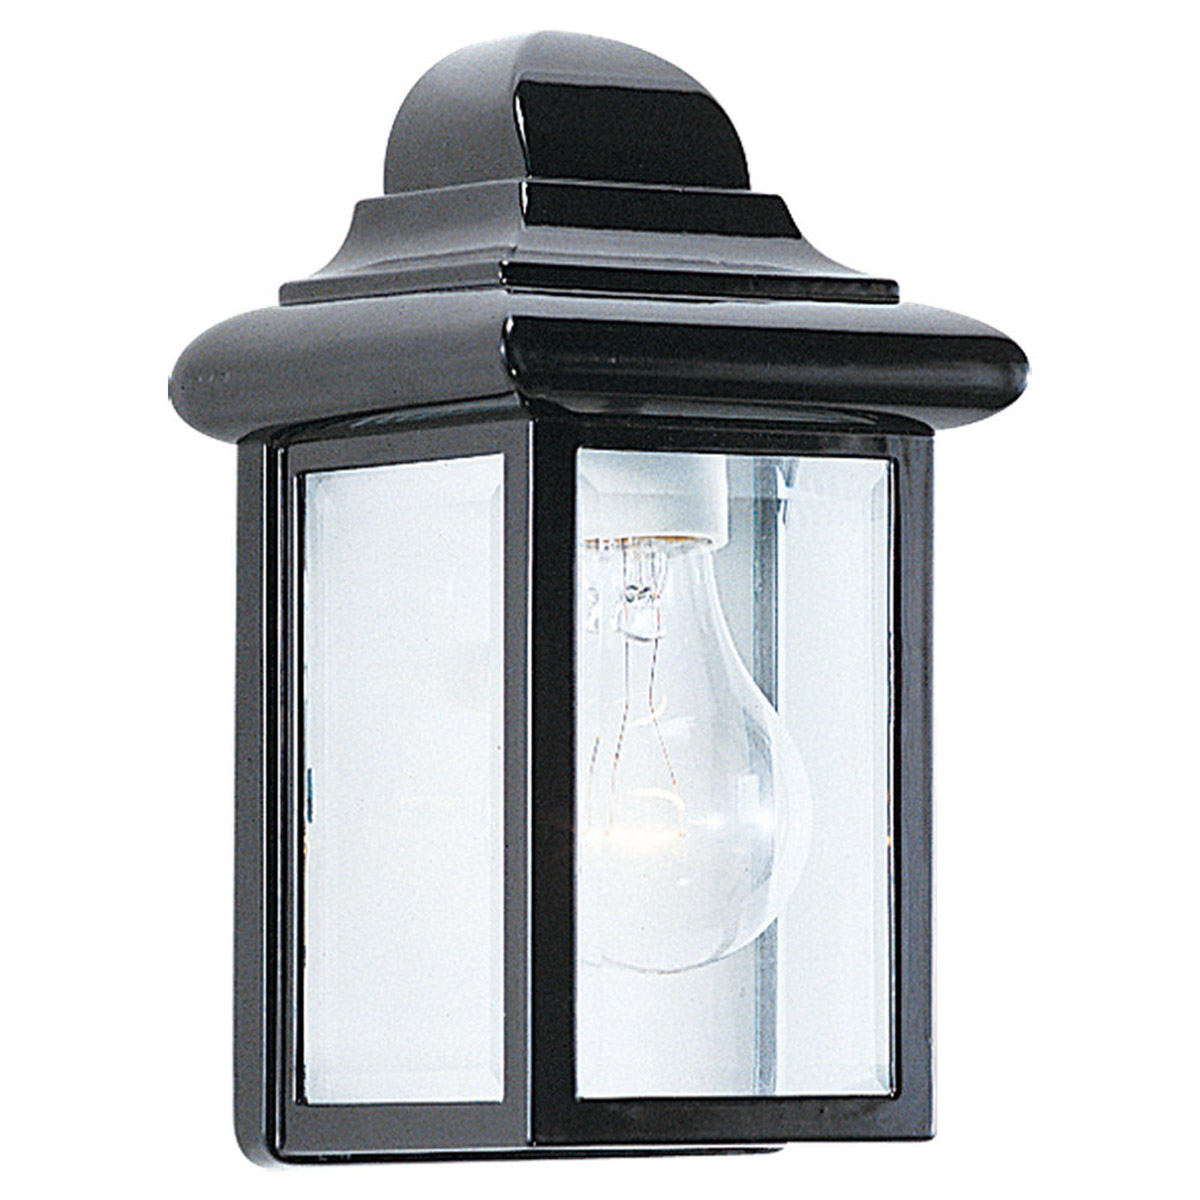 Sea Gull Lighting Mullberry Hill 1 Light Outdoor Wall Lantern in Black 8588-12